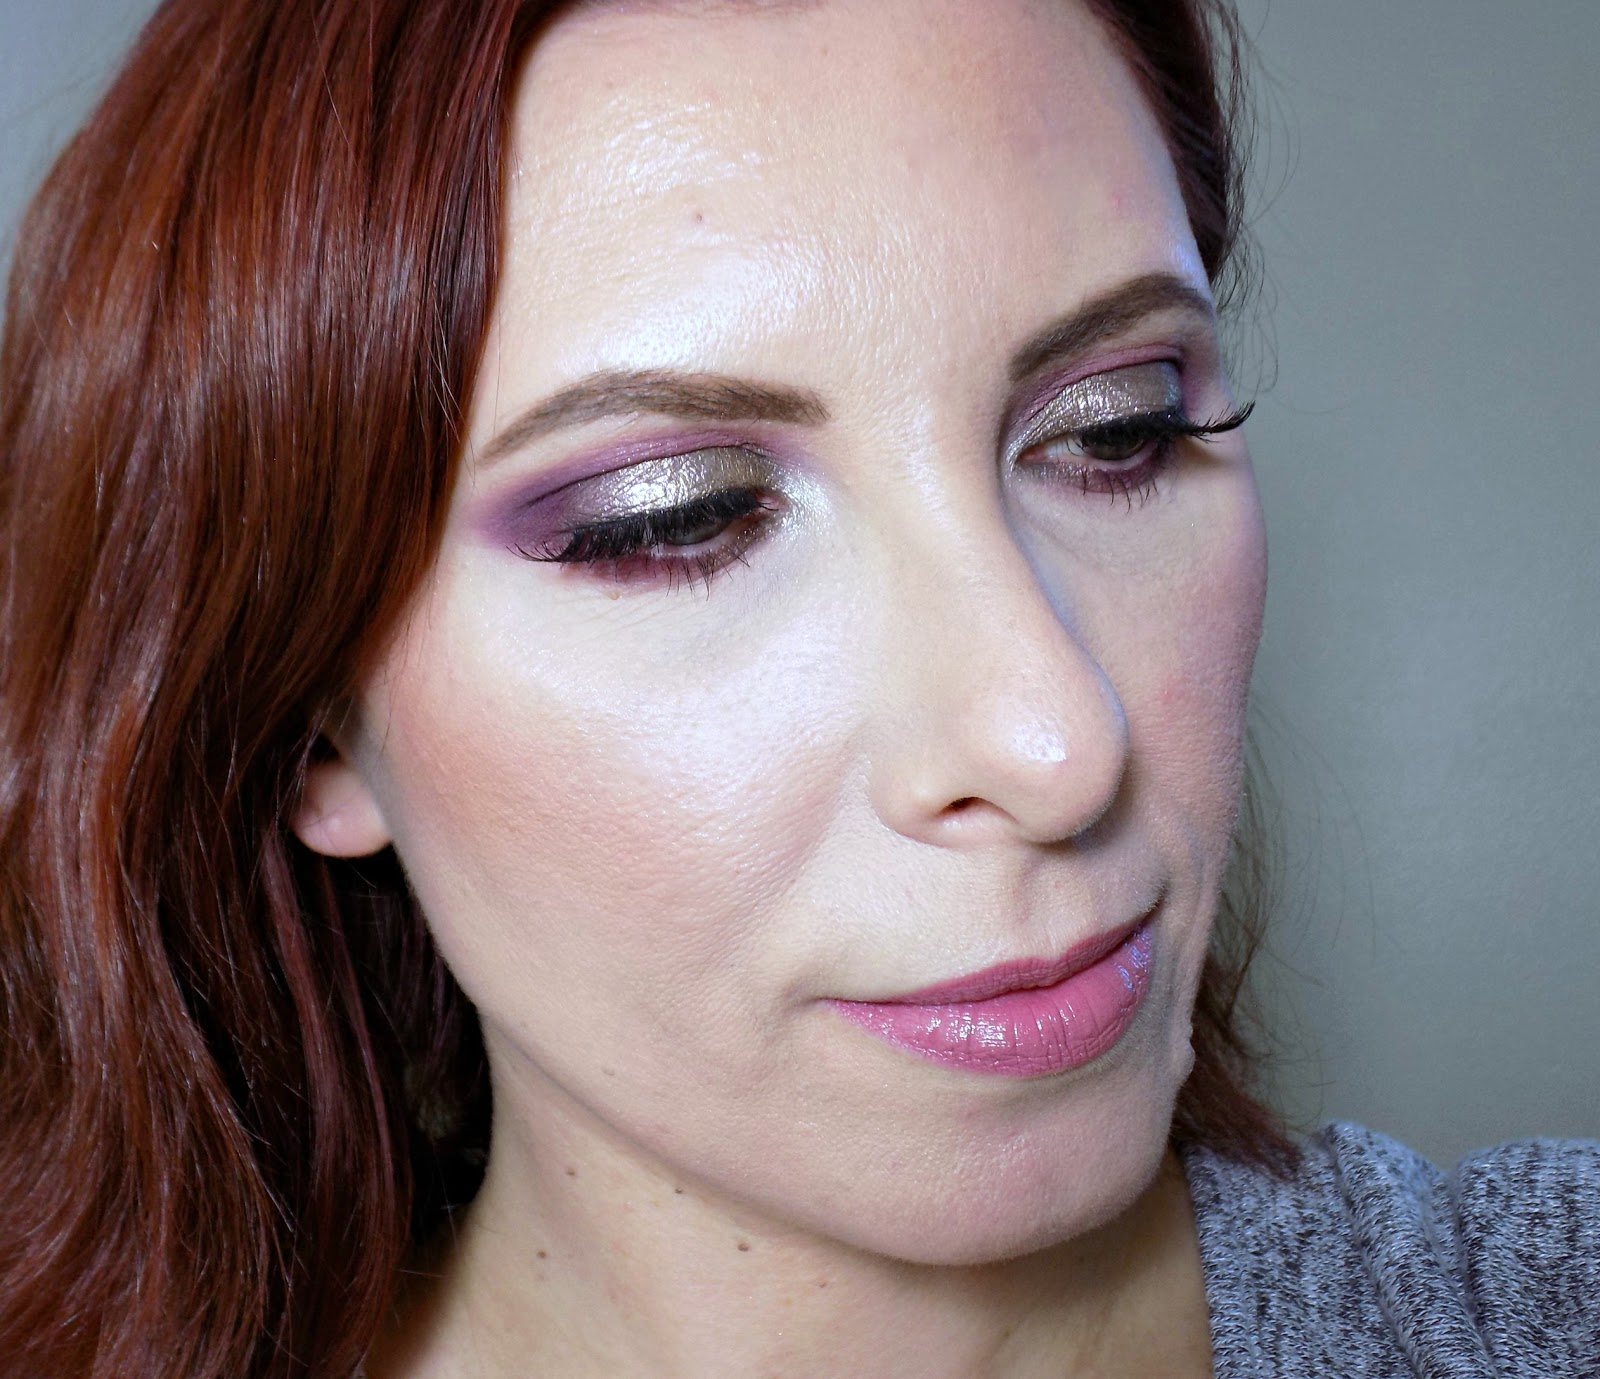 Purple eye makeup full face look